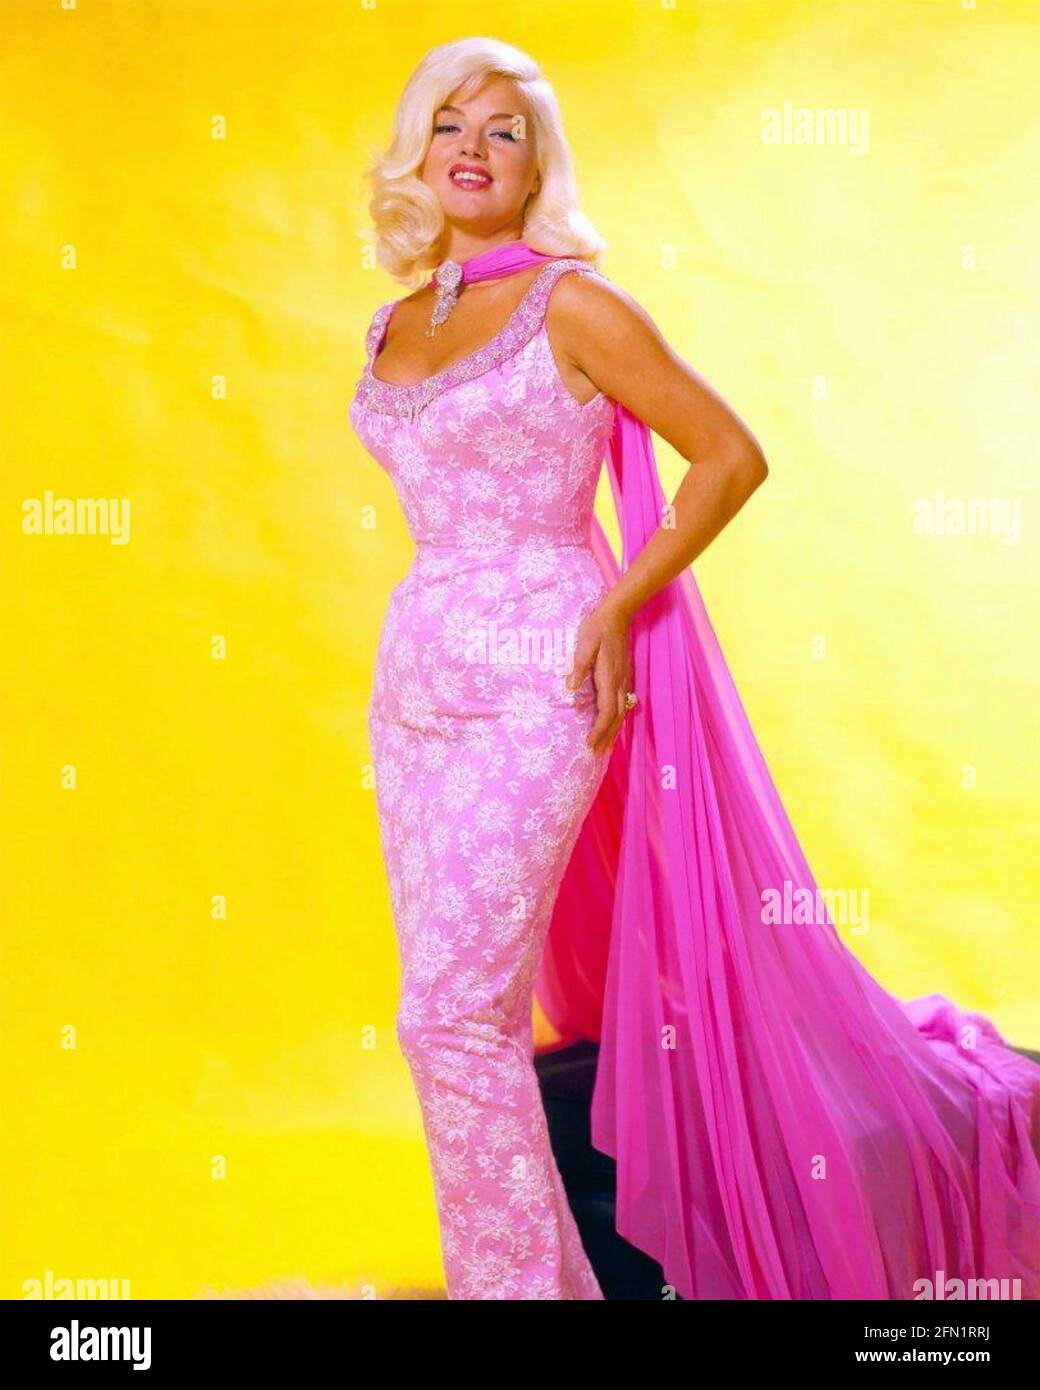 DIANA DORS (1931-1984) English fiom and TV actress about 1965 Stock Photo